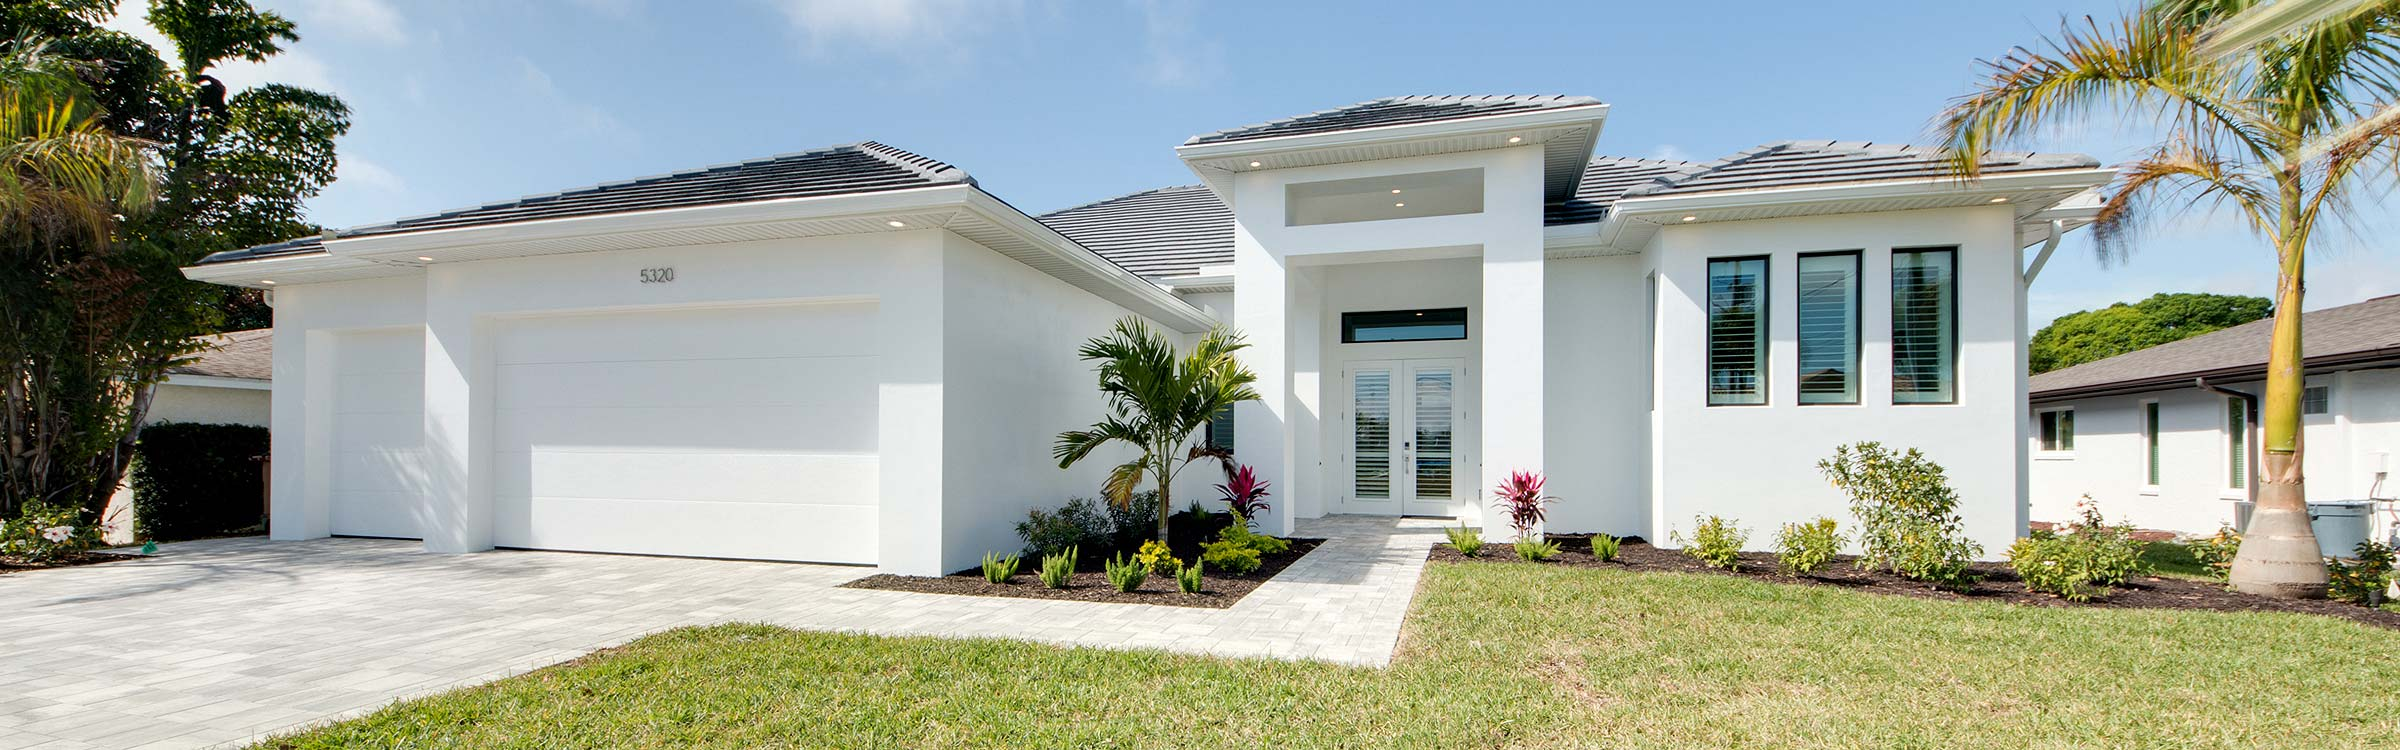 Real Estate in Cape Coral